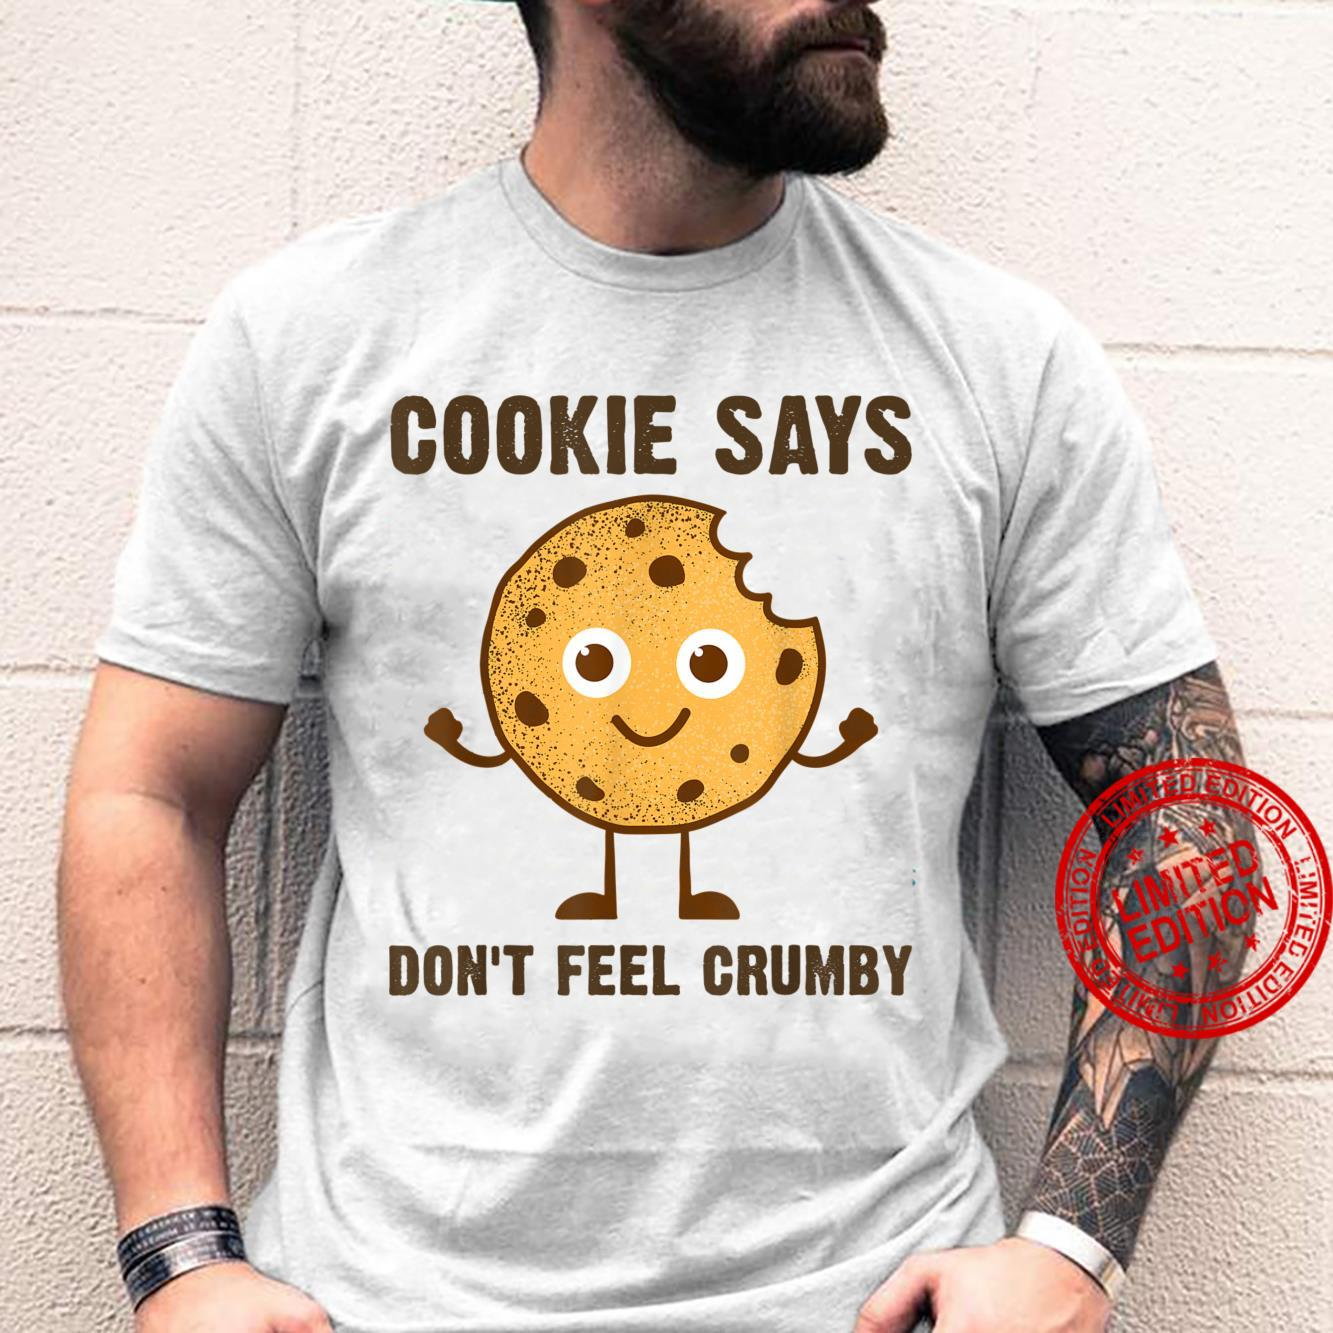 Vintage Chip the Cookie says Don't Feel Crumby Shirt